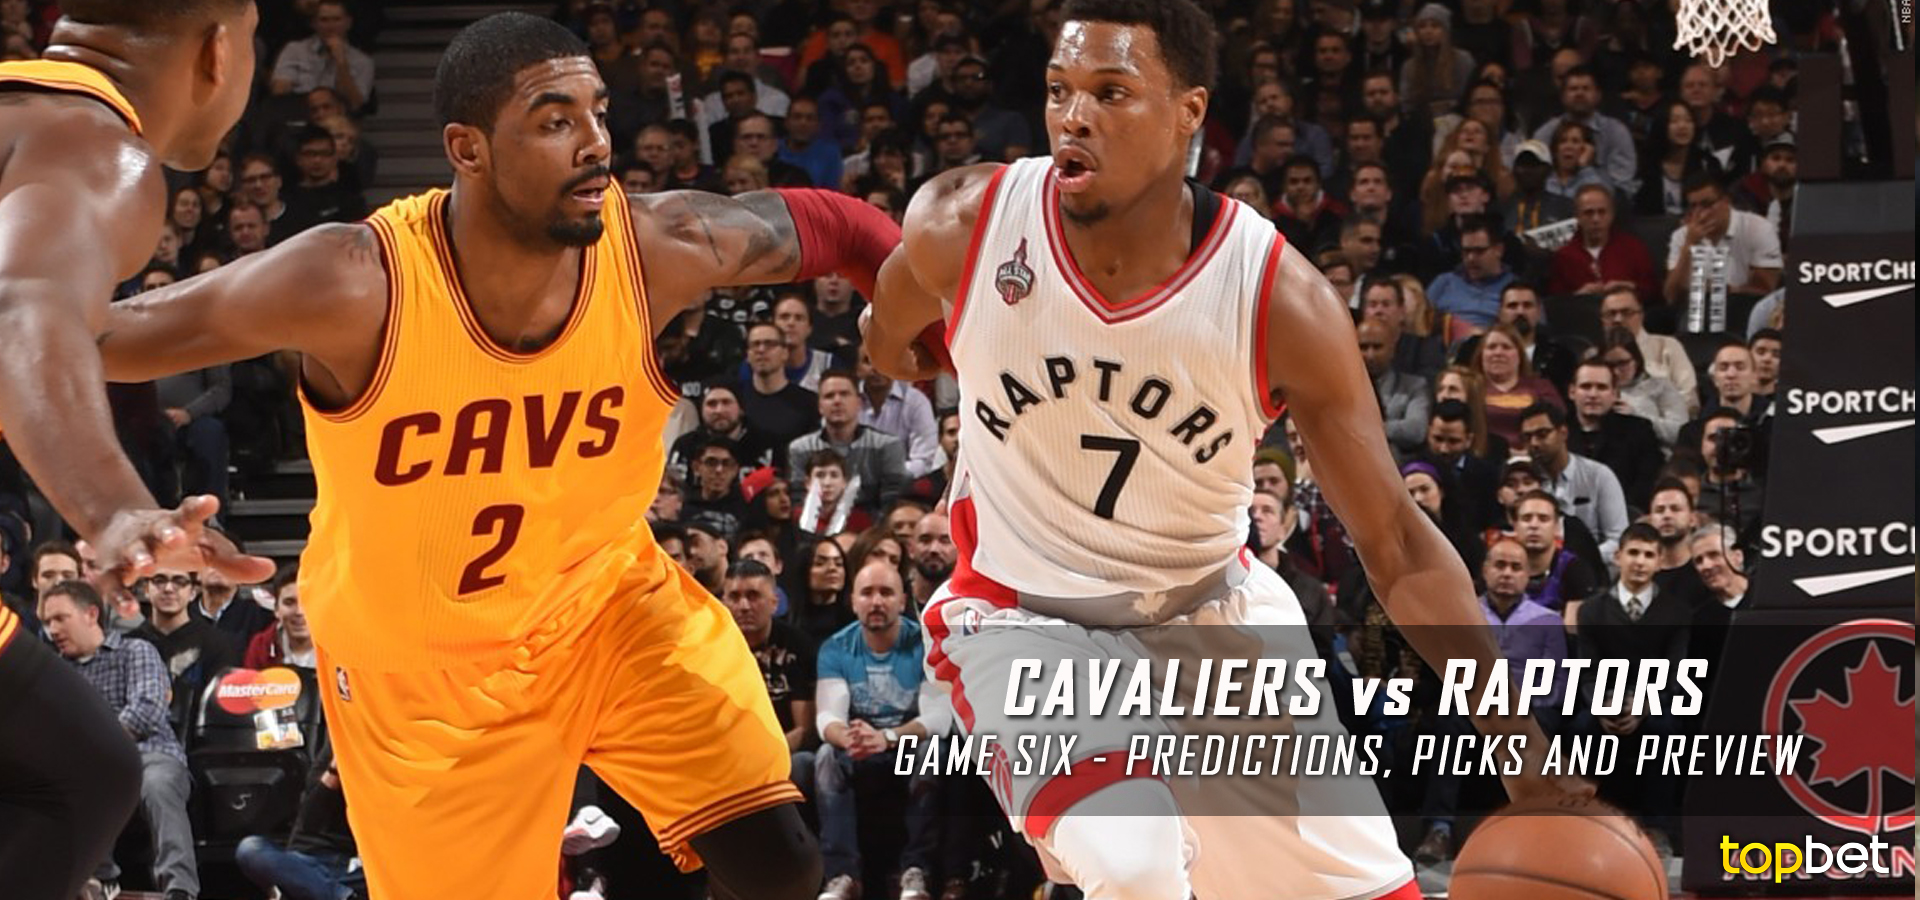 Cavaliers vs Raptors Series Game 6 Predictions, Picks, Odds